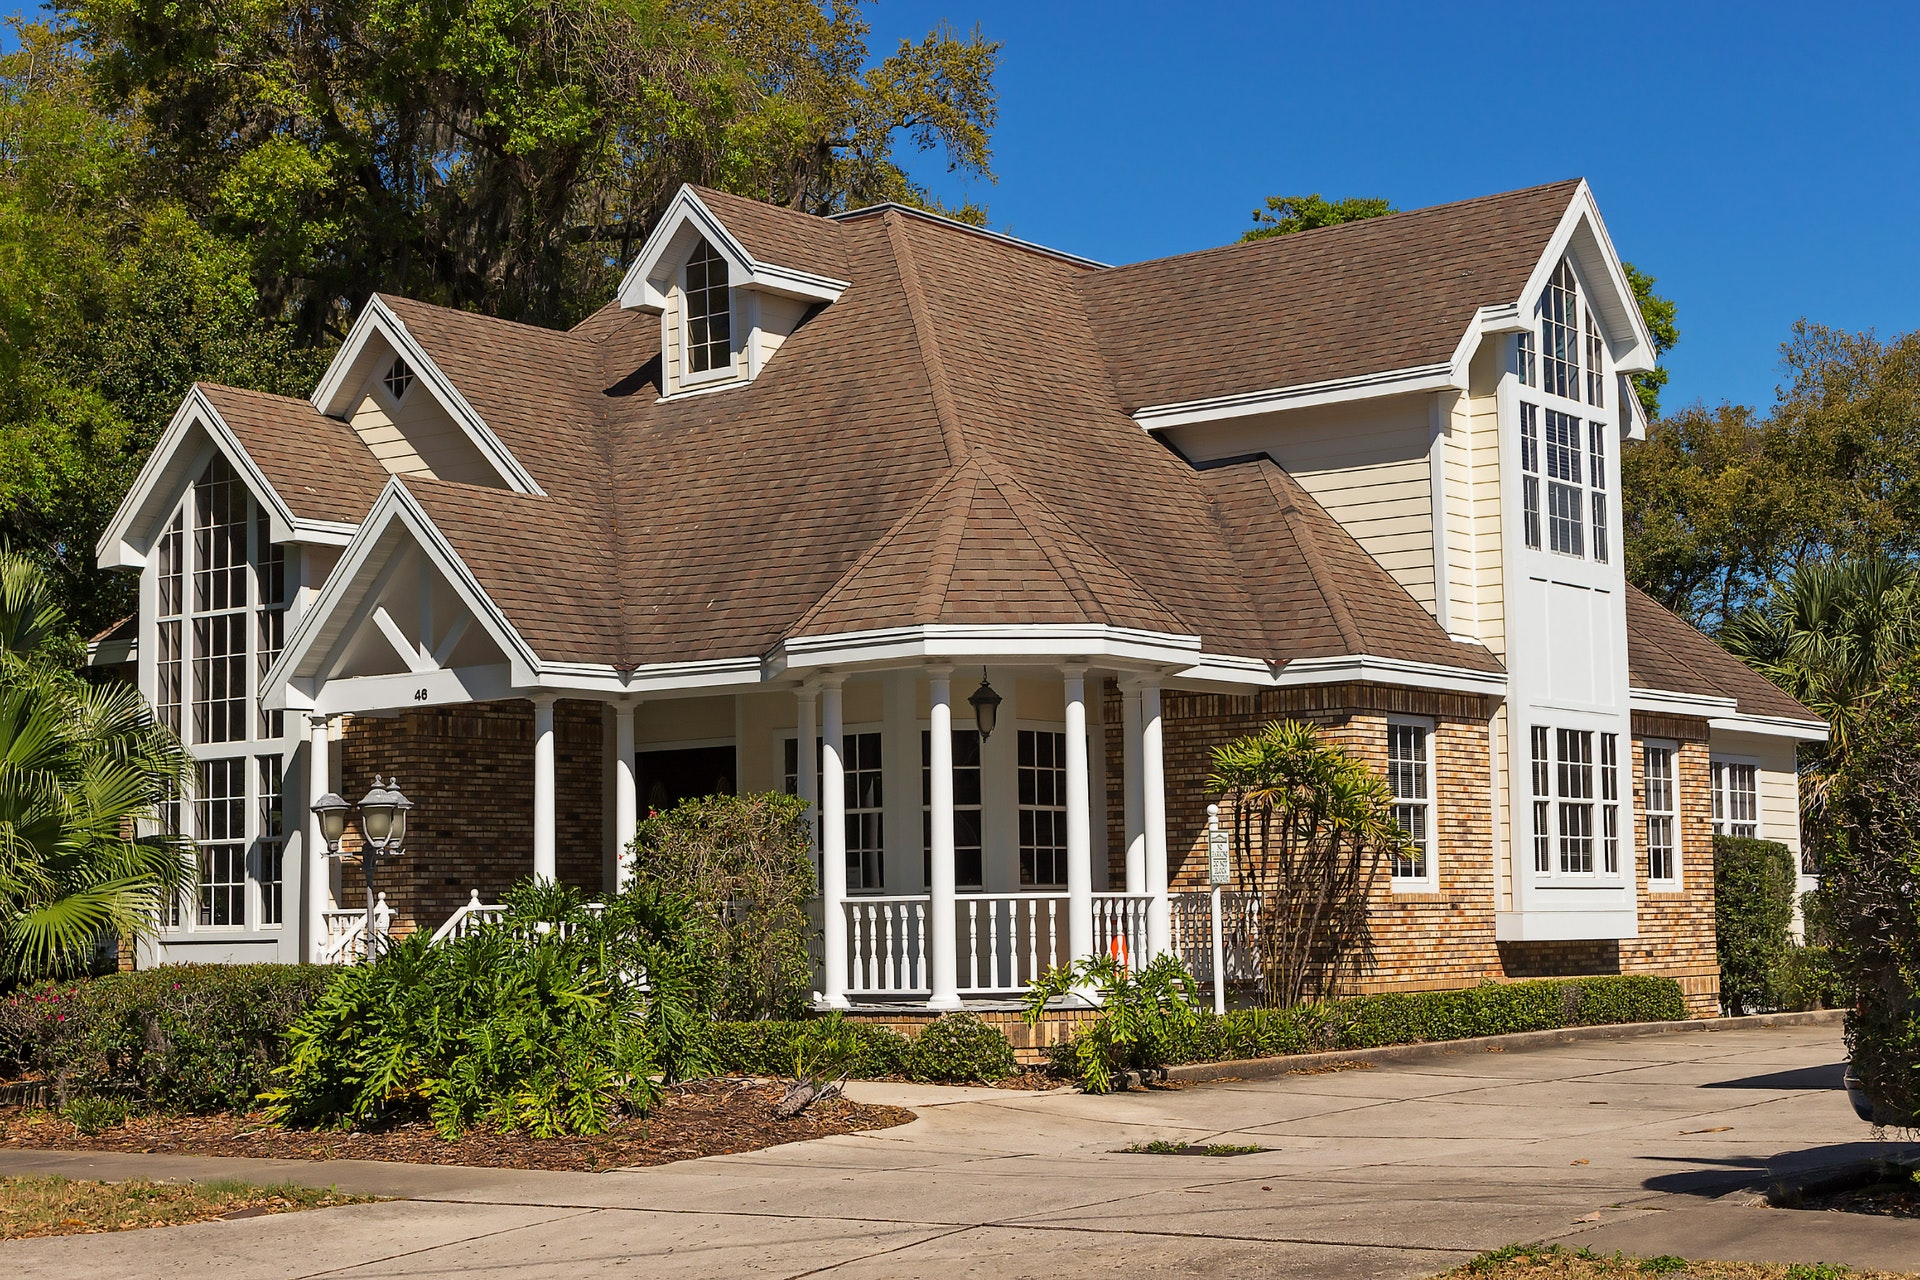 Small Guide on Exterior Home Renovations